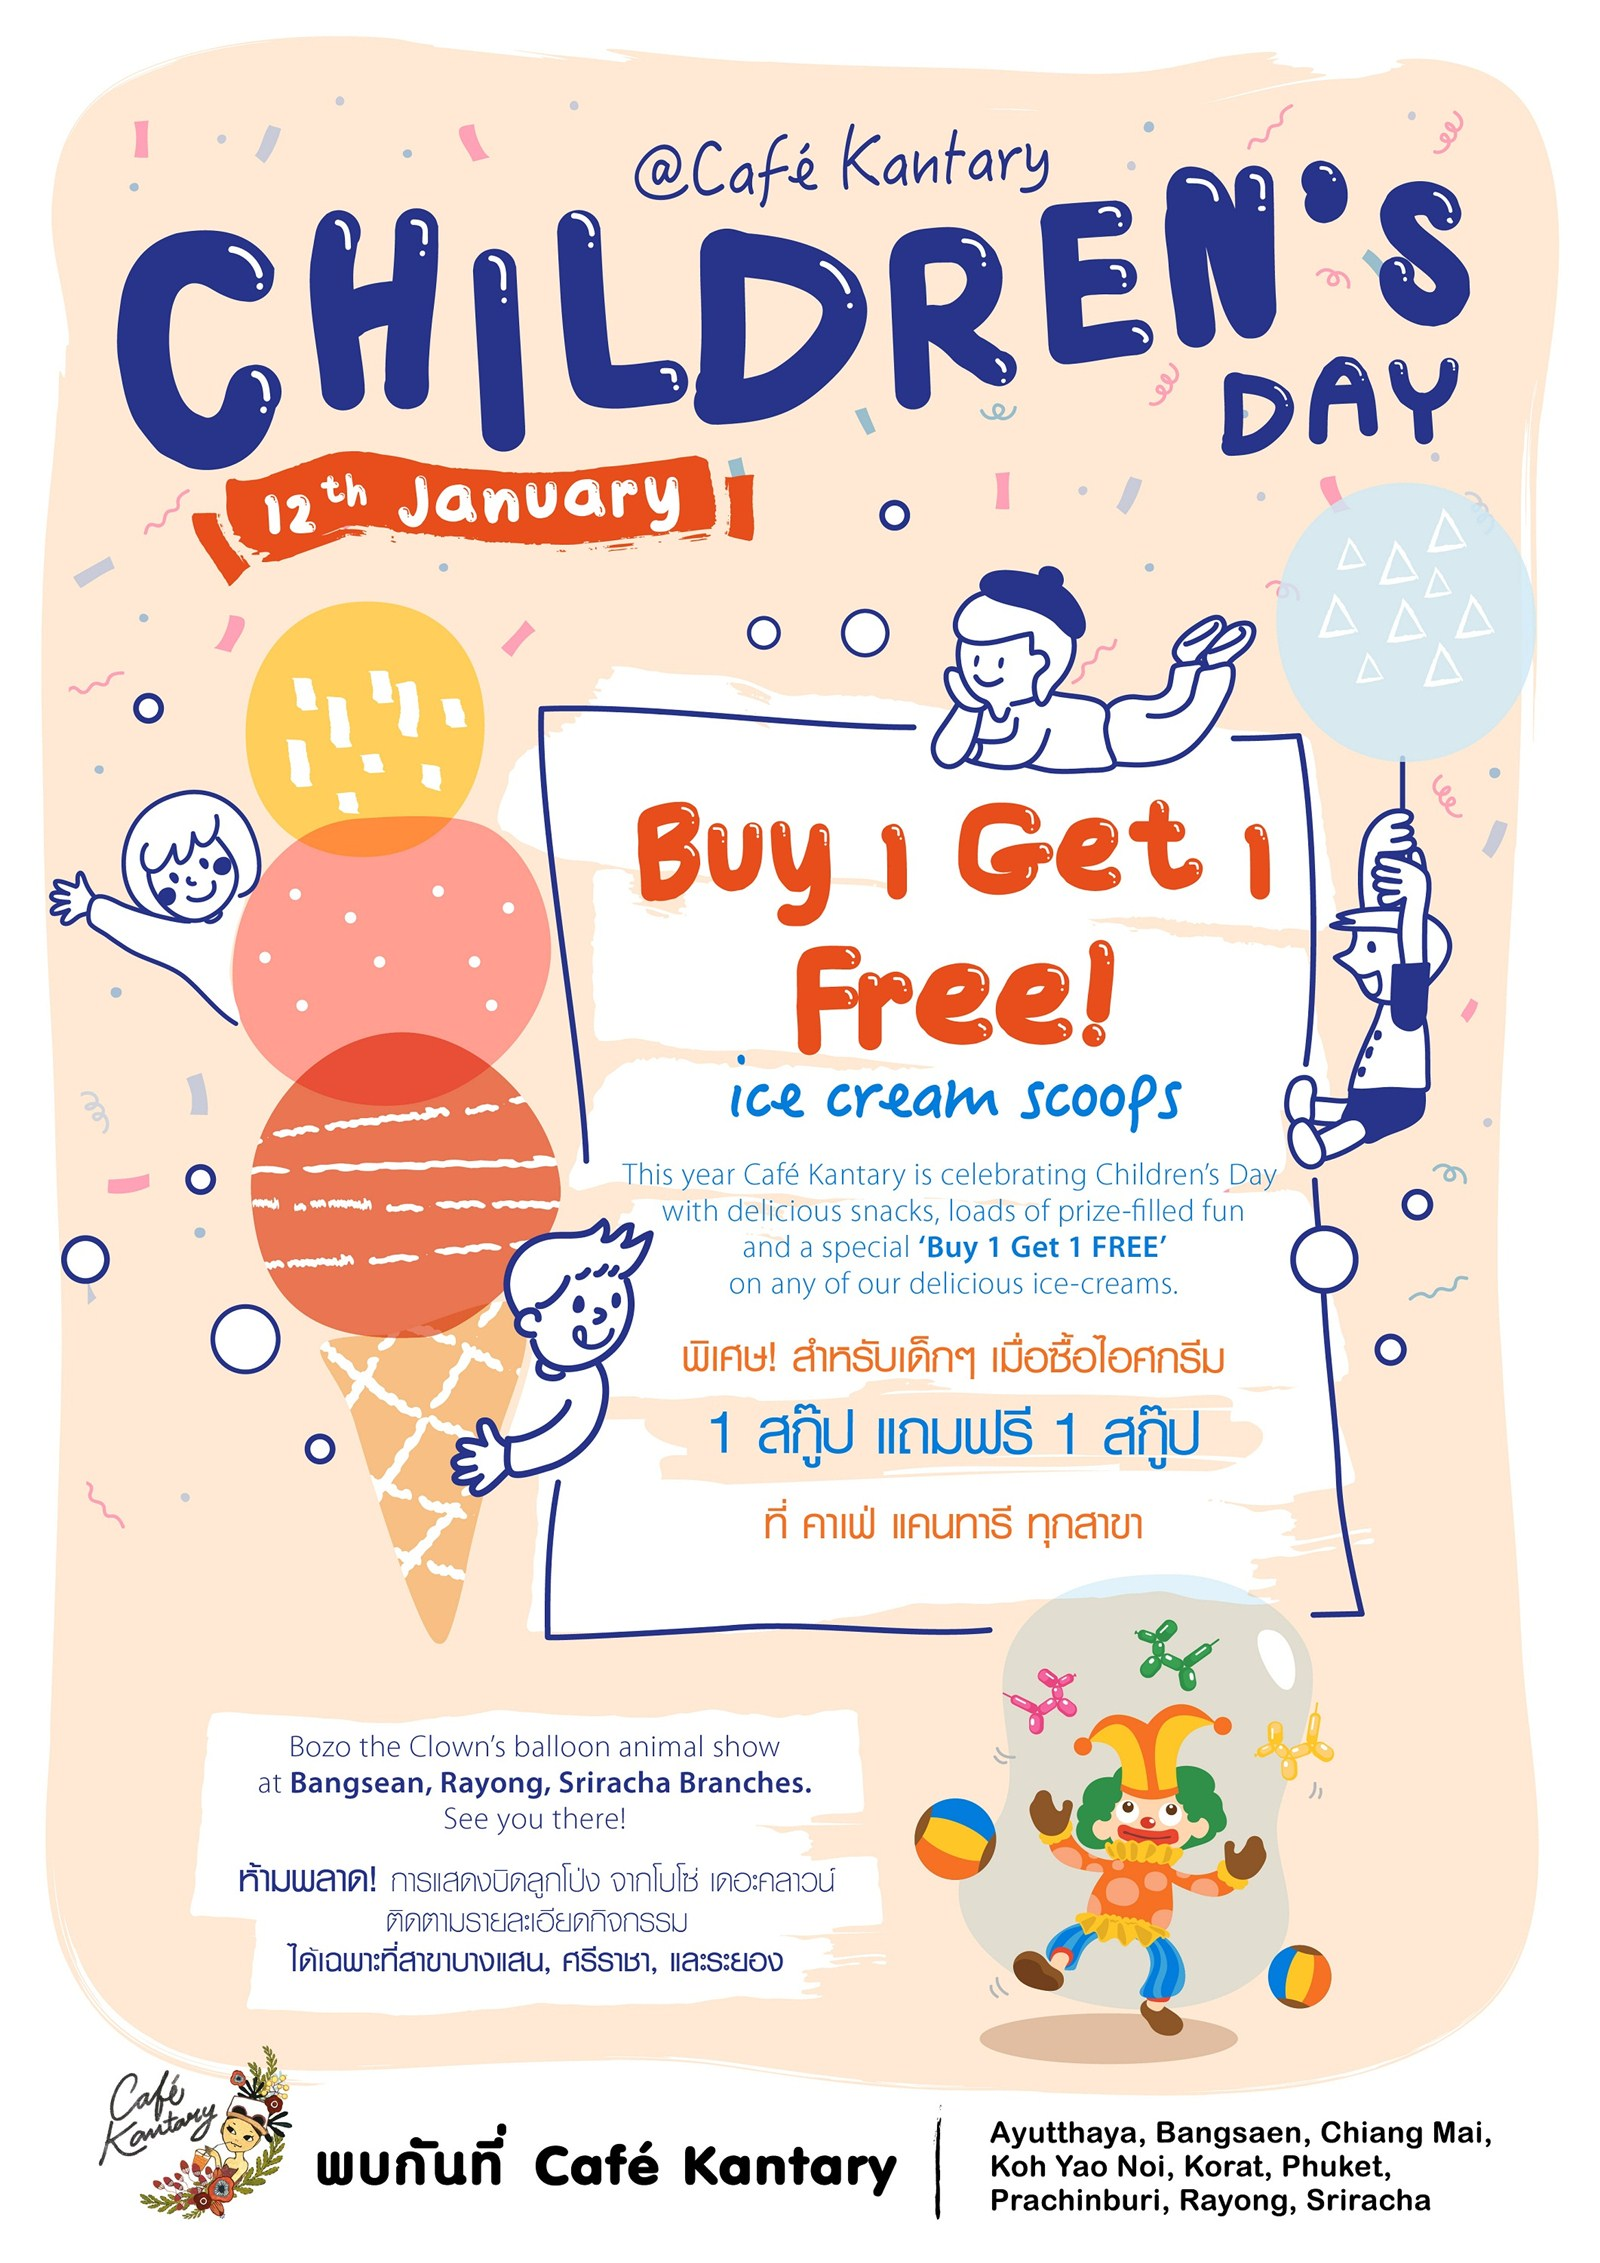 Childrens Day Celebration Cafe Kantary 10002